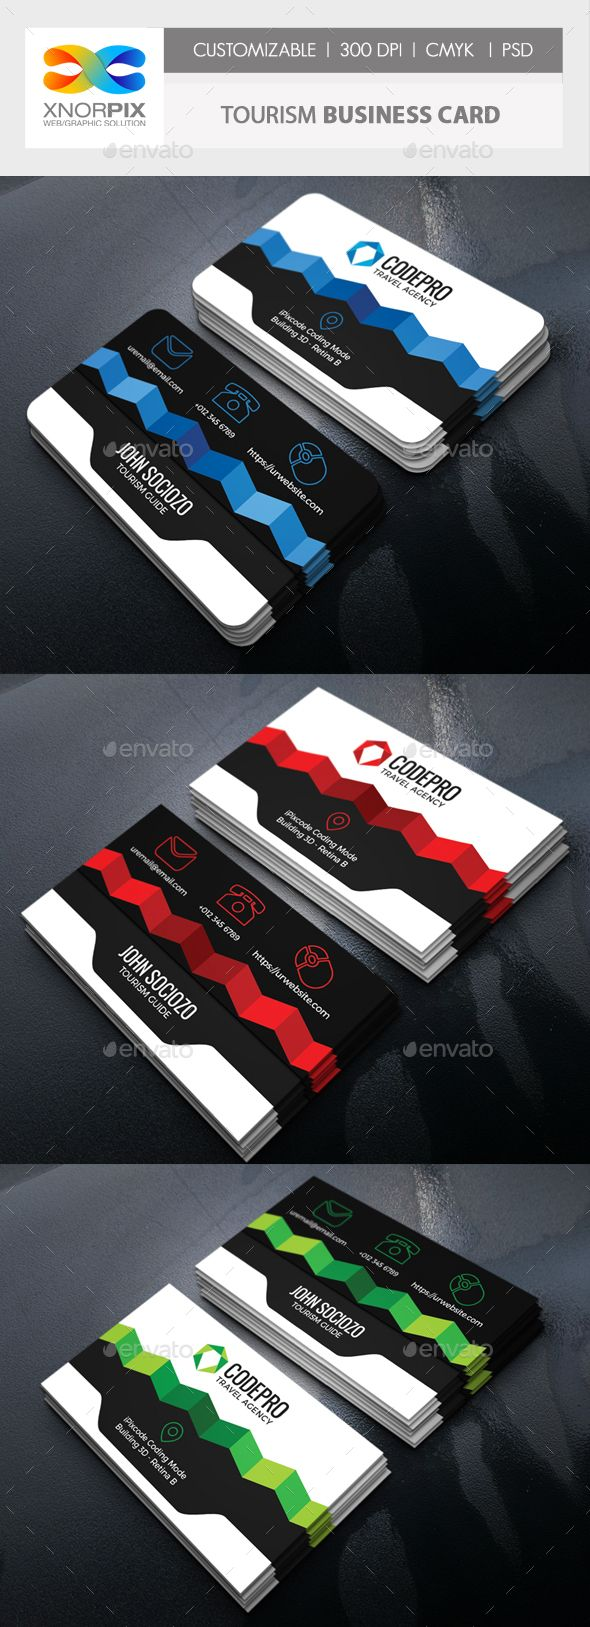 Tourism business card corporate business cards business card business card detail adobe photoshop cs4 version round square corner possible easy to edit pinteres reheart Image collections